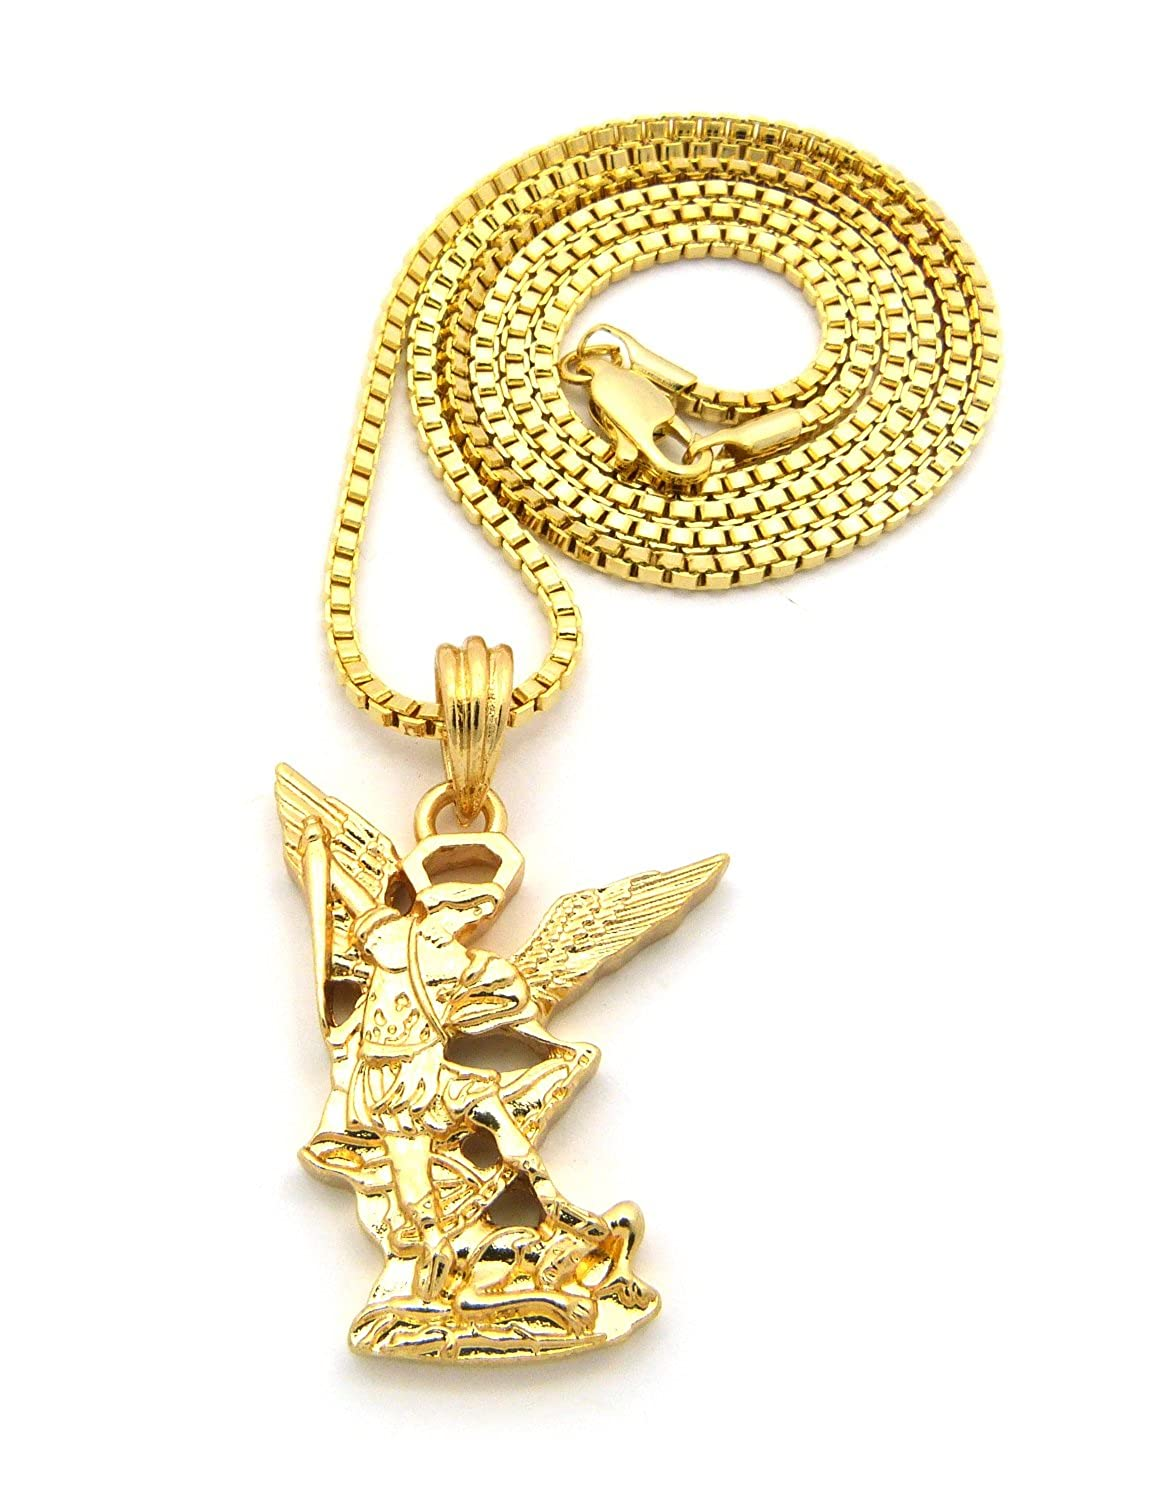 Amazon st michael the archangel pendant with 2mm box chain amazon st michael the archangel pendant with 2mm box chain necklace gold tone 24 jewelry mozeypictures Gallery